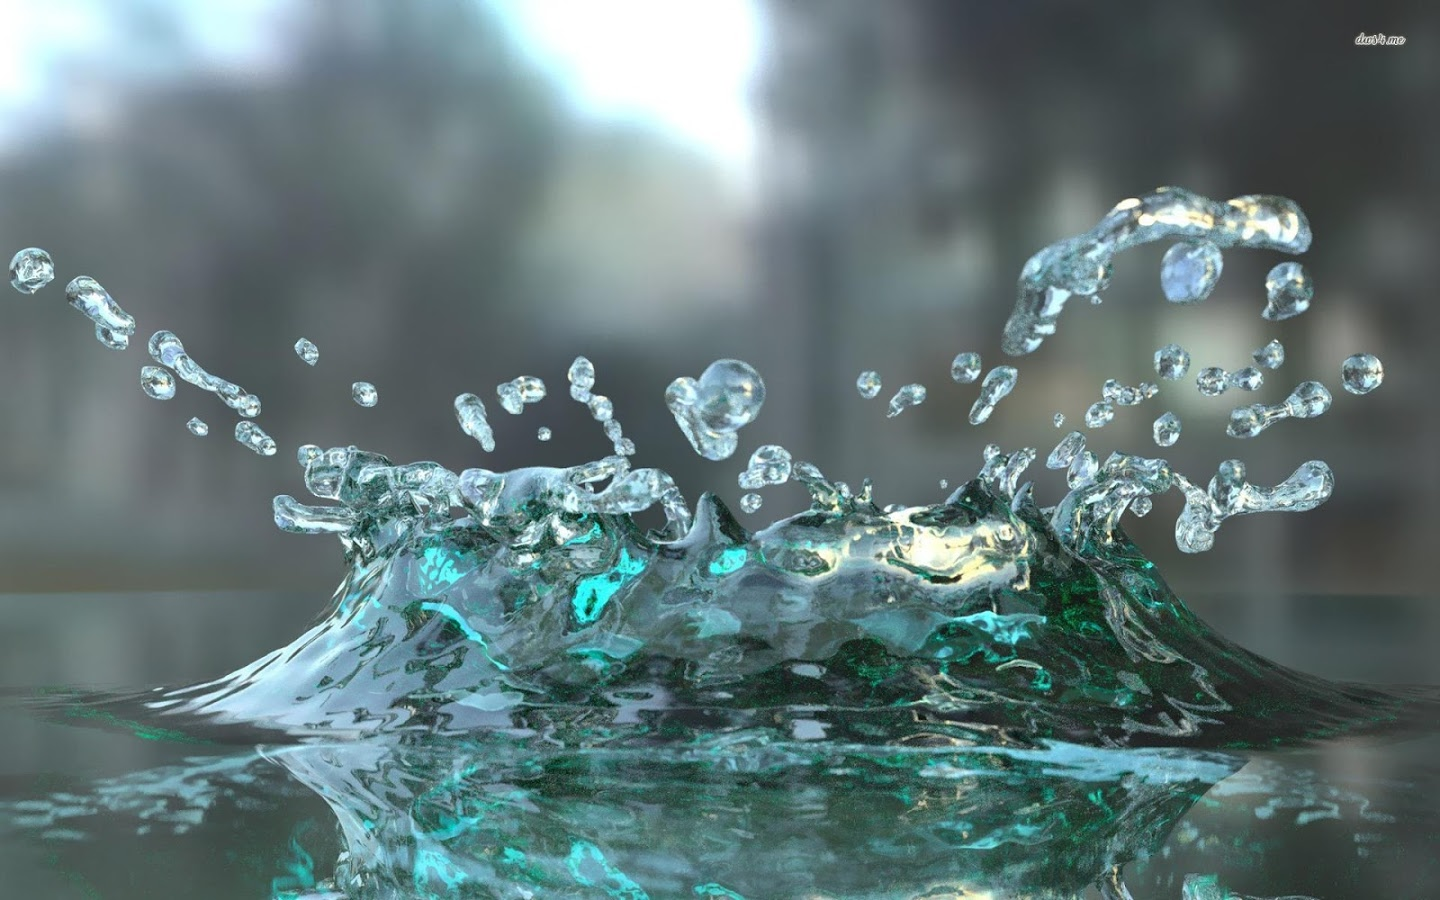 3d Water Wallpaper Desktop Group Download For Free, - Soaking In His Presence , HD Wallpaper & Backgrounds